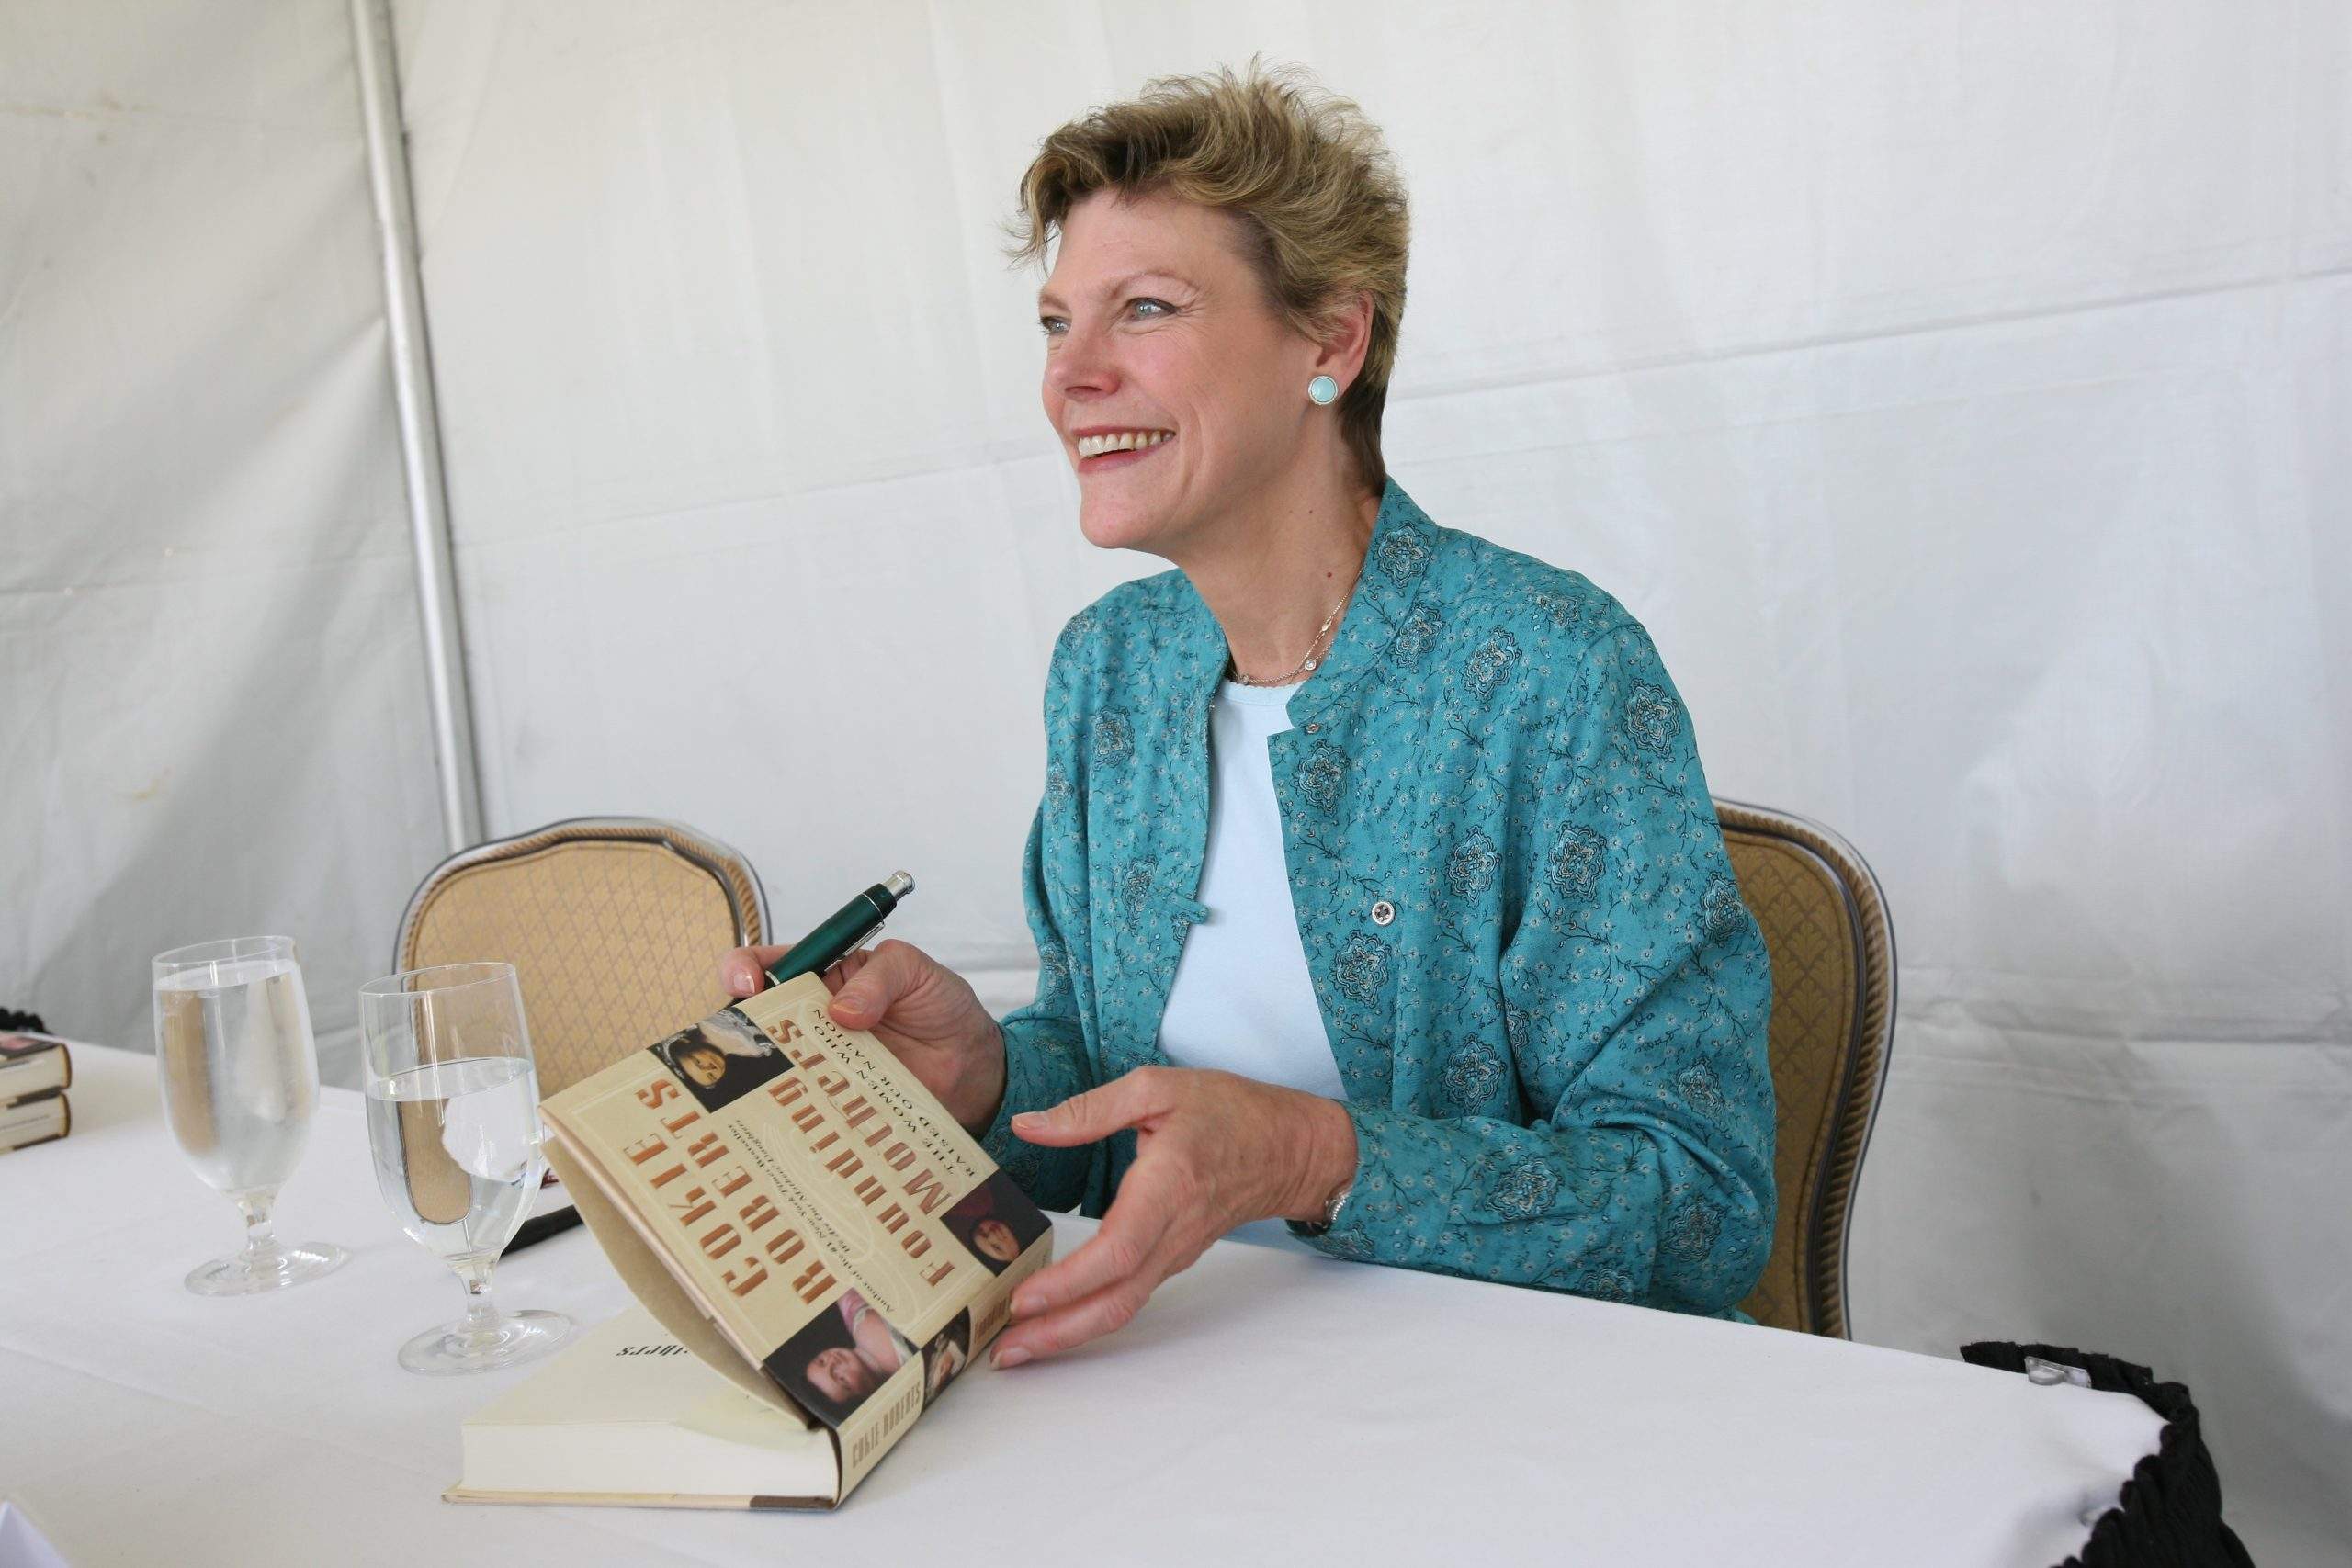 SVWC Mourns the Passing of Cokie Roberts